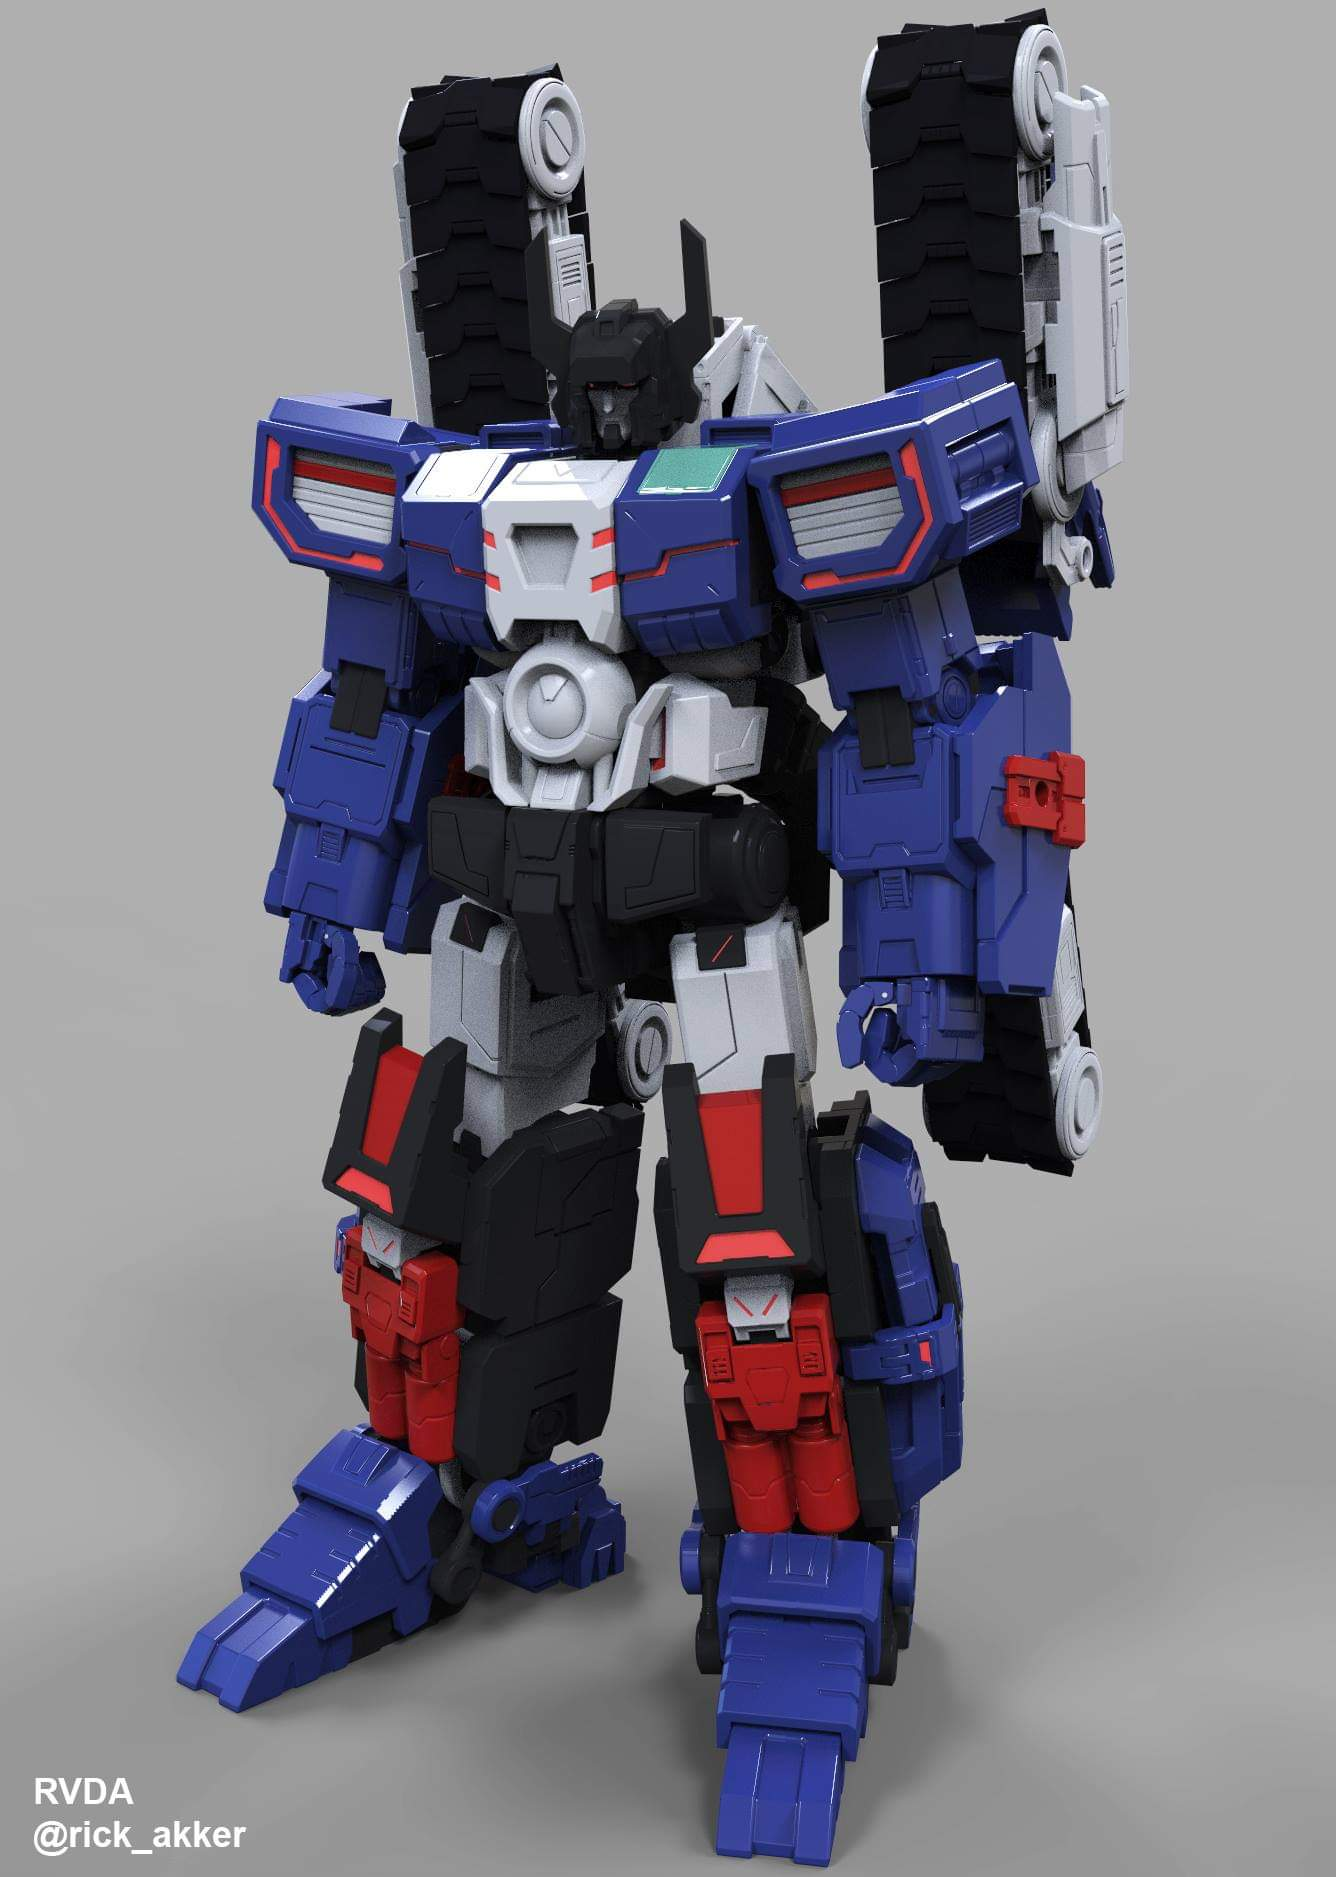 [Mastermind Creations] Produit Tiers - R-50 Supermax - aka Fortress/Forteresse Maximus des BD IDW GN16VMwx_o